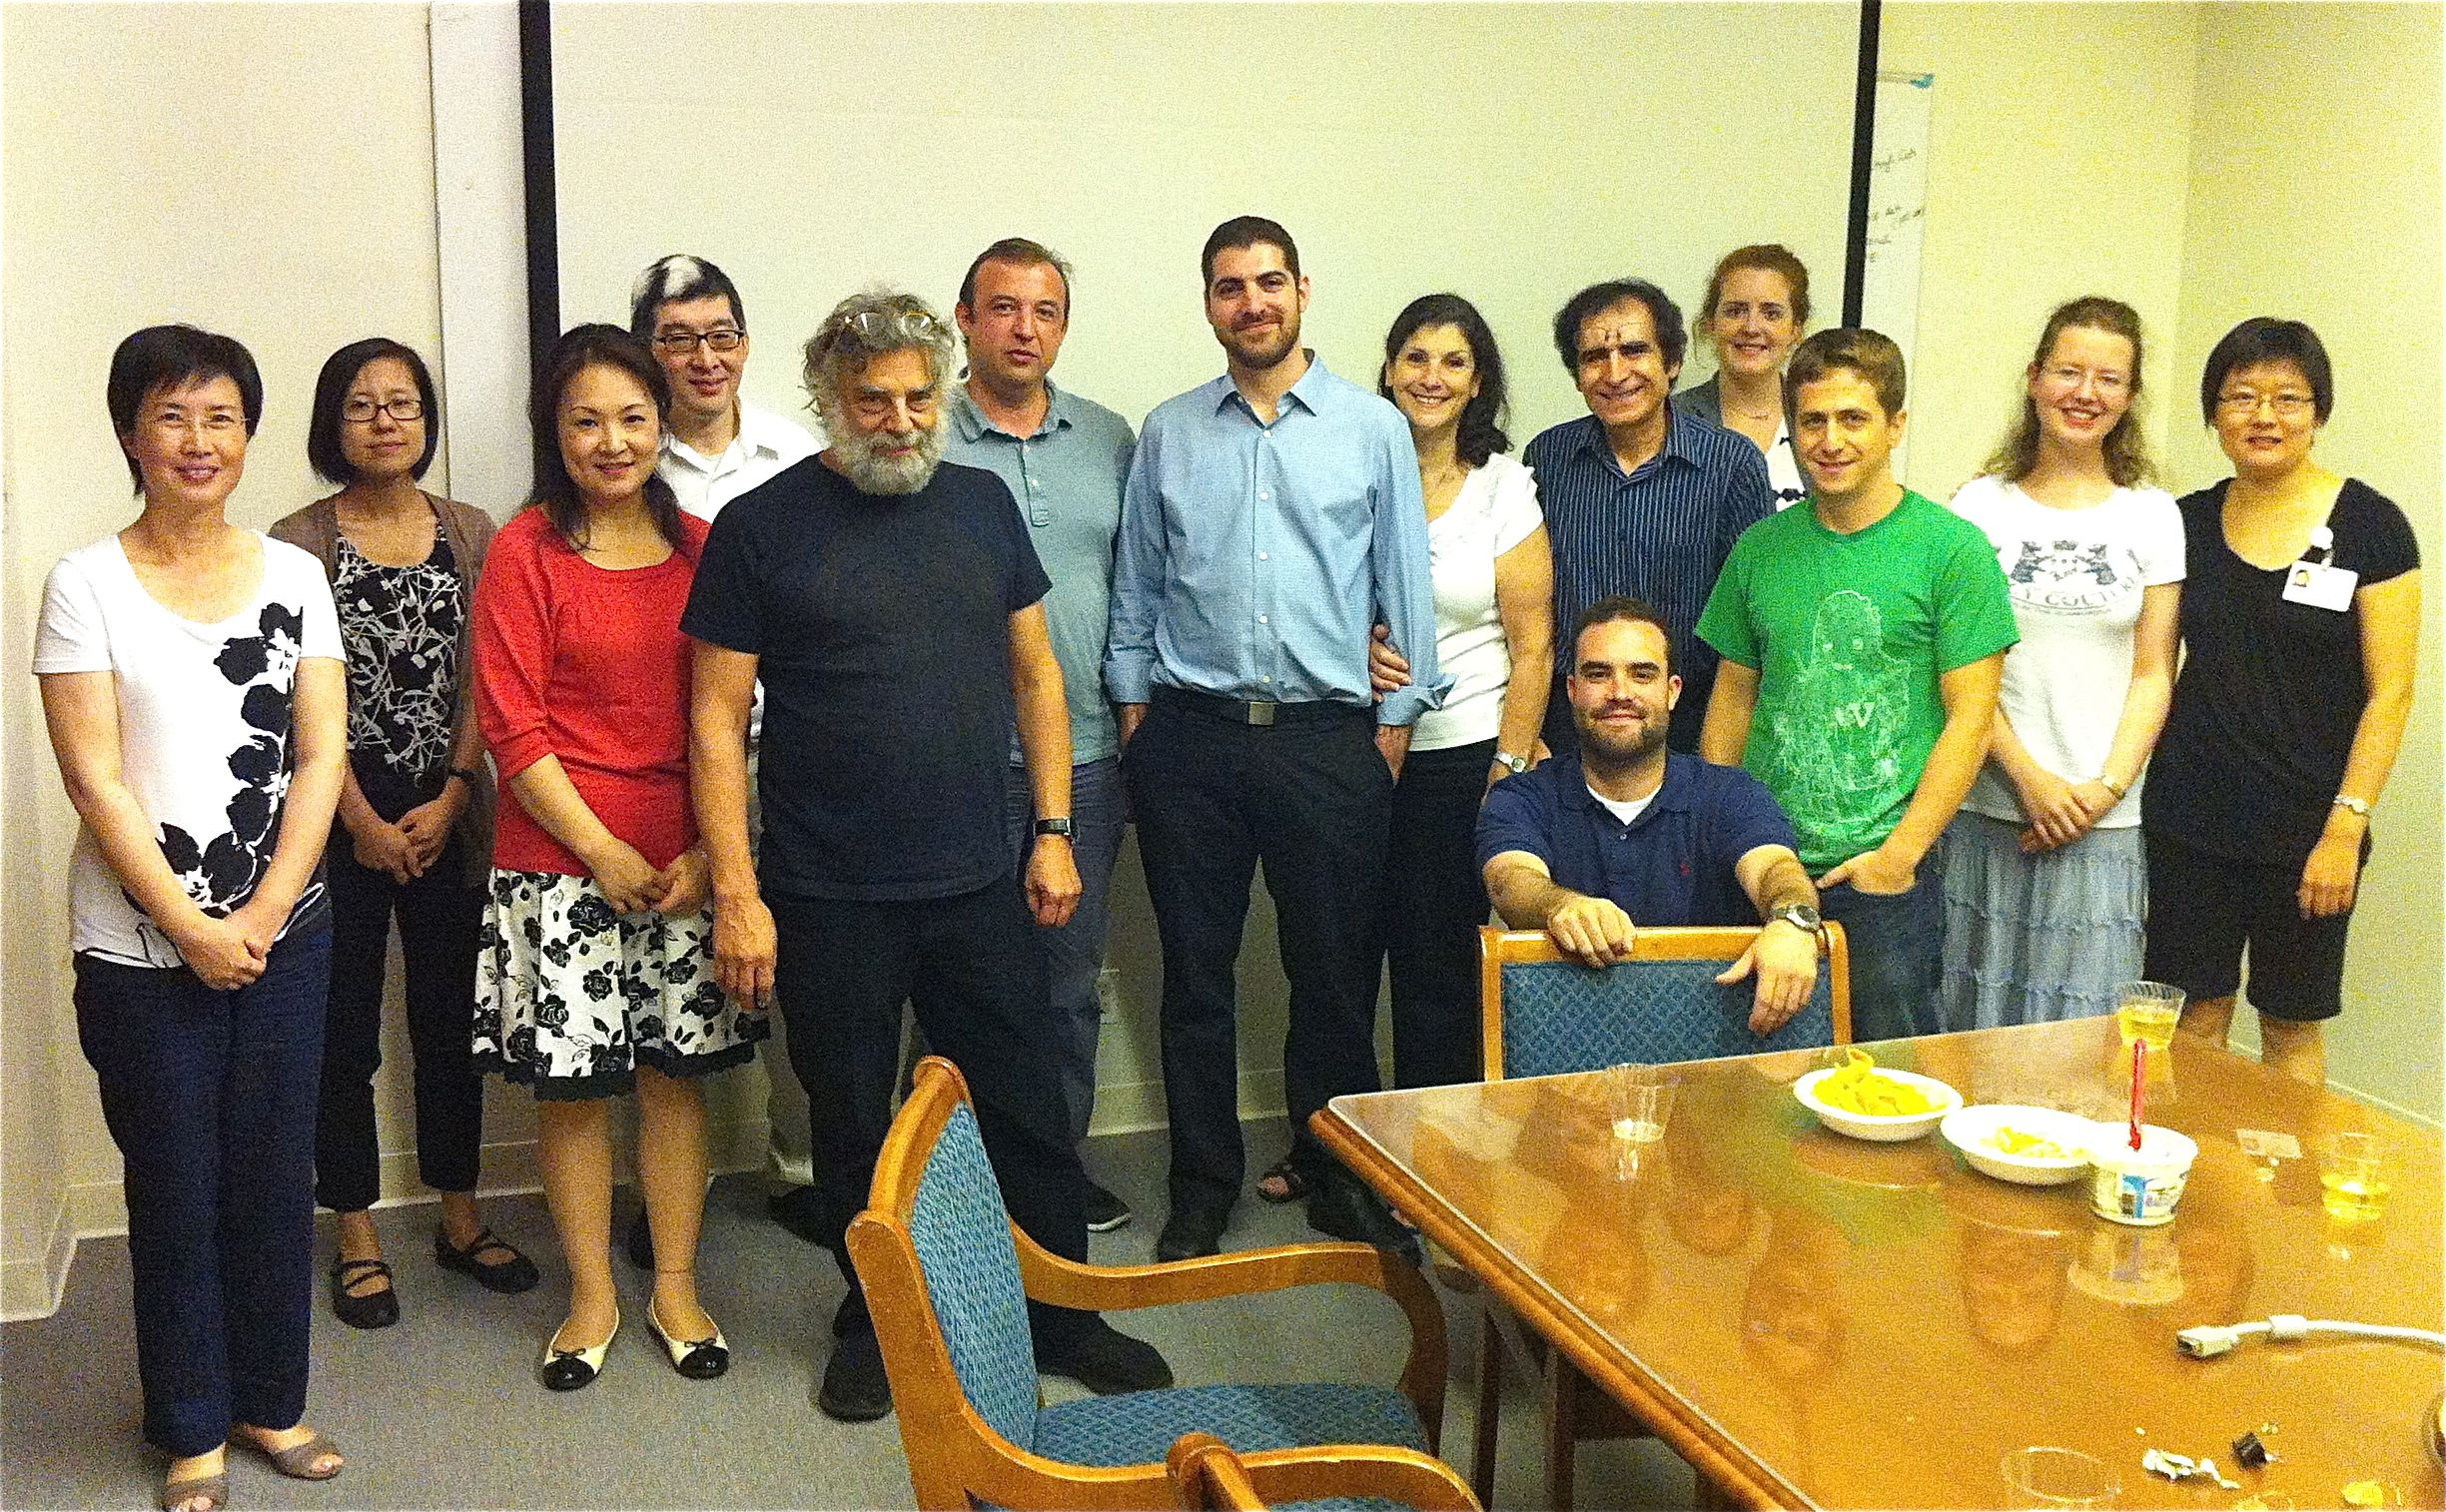 Group photo at Tal thesis defense.